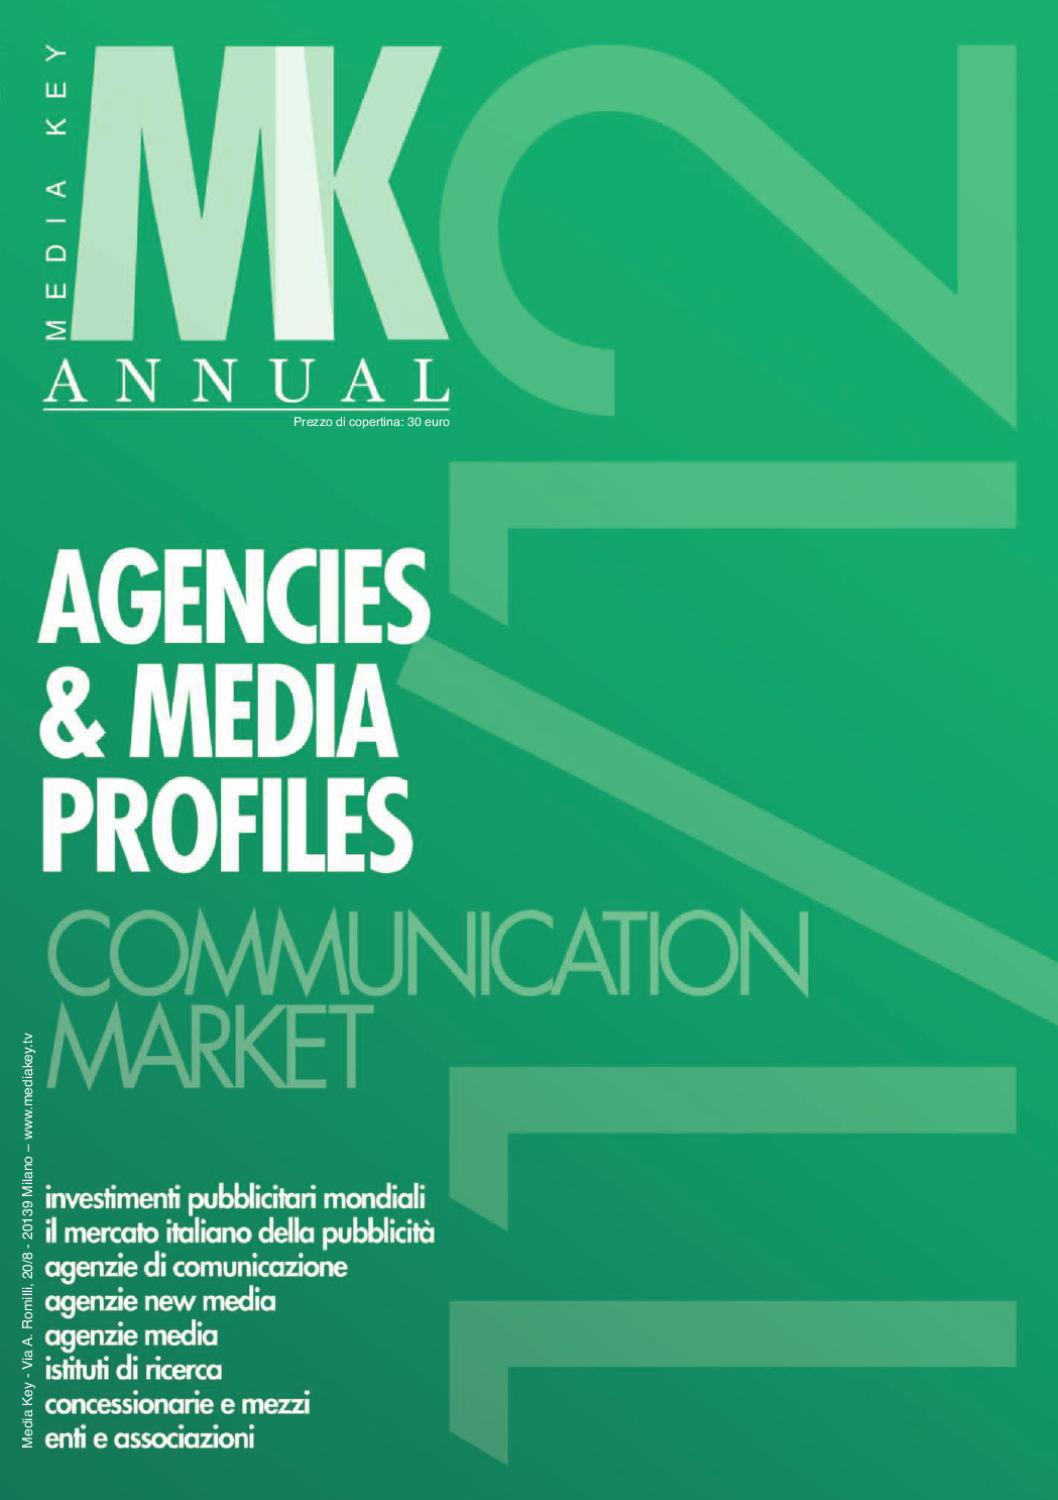 Media Key Annual 2011 by Media Key Srl issuu